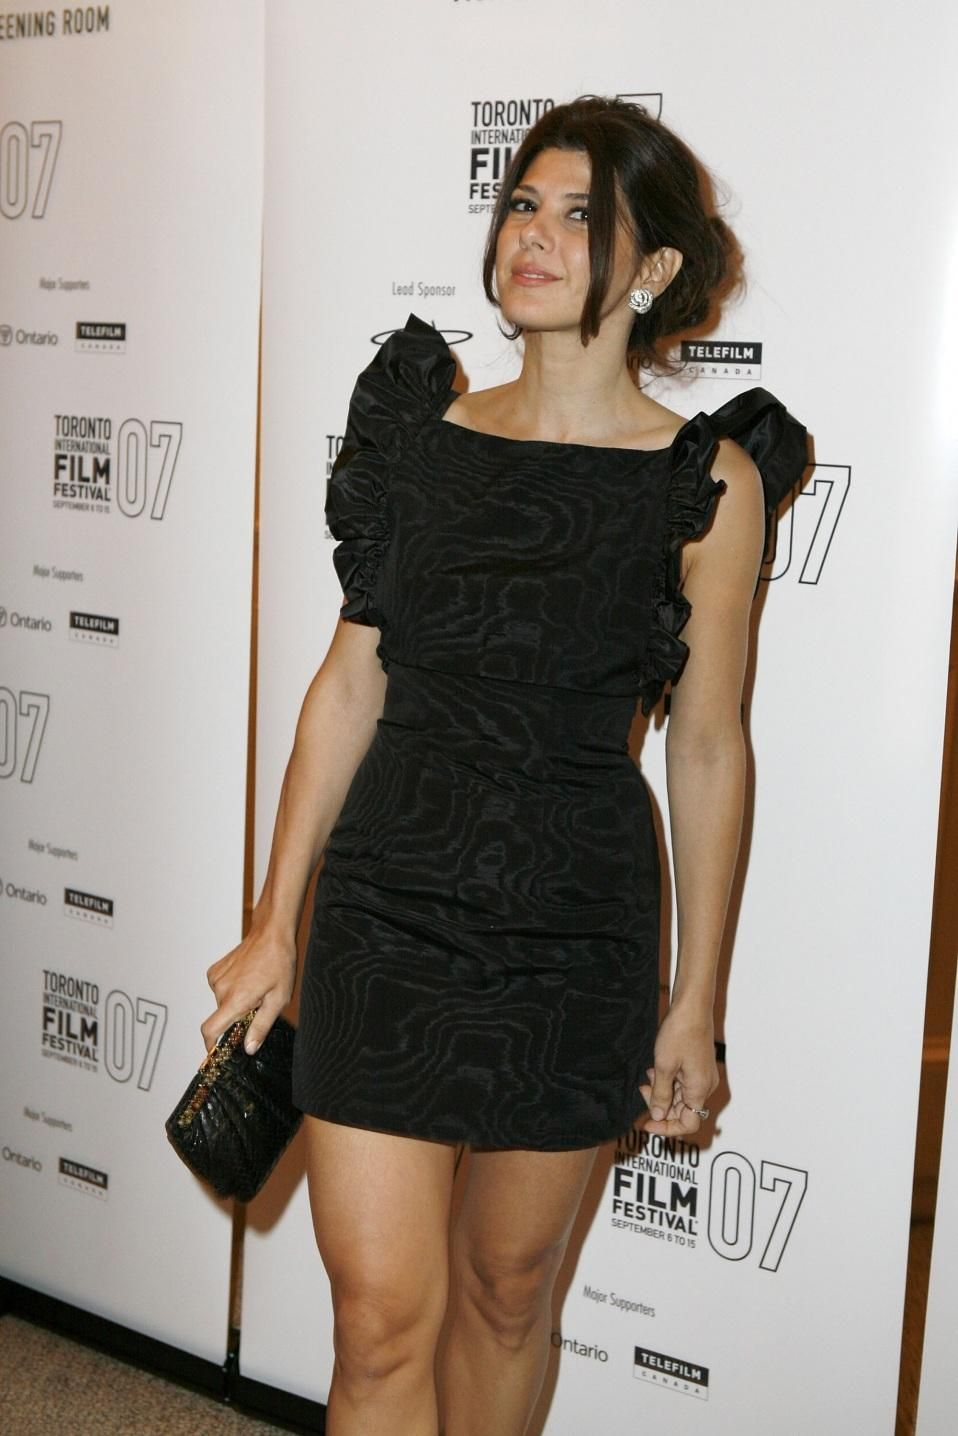 Right! Marisa tomei devil think, that